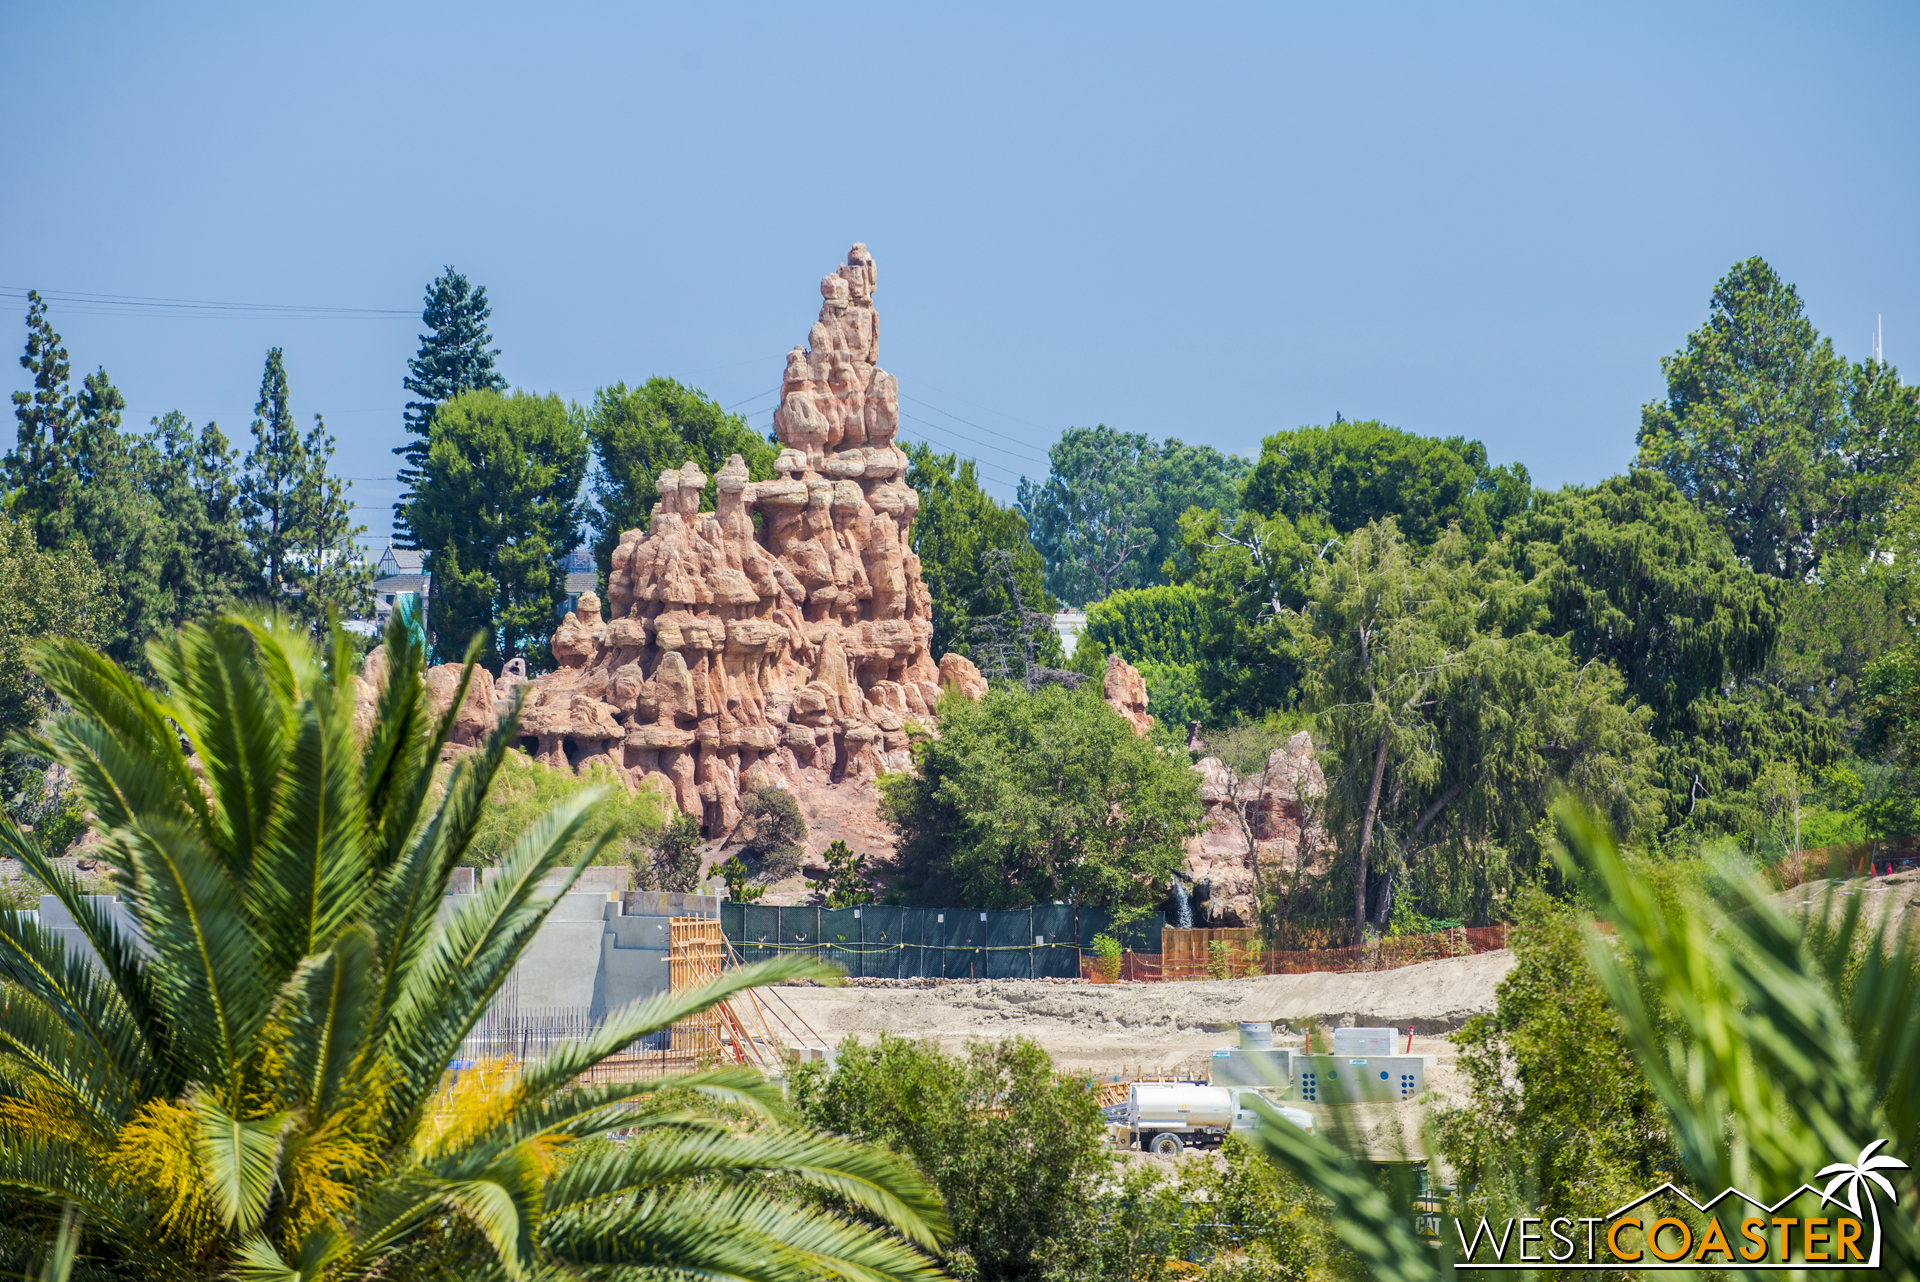 The tall, ribbed buttes of Big Thunder Mountain rise up as we move southward.